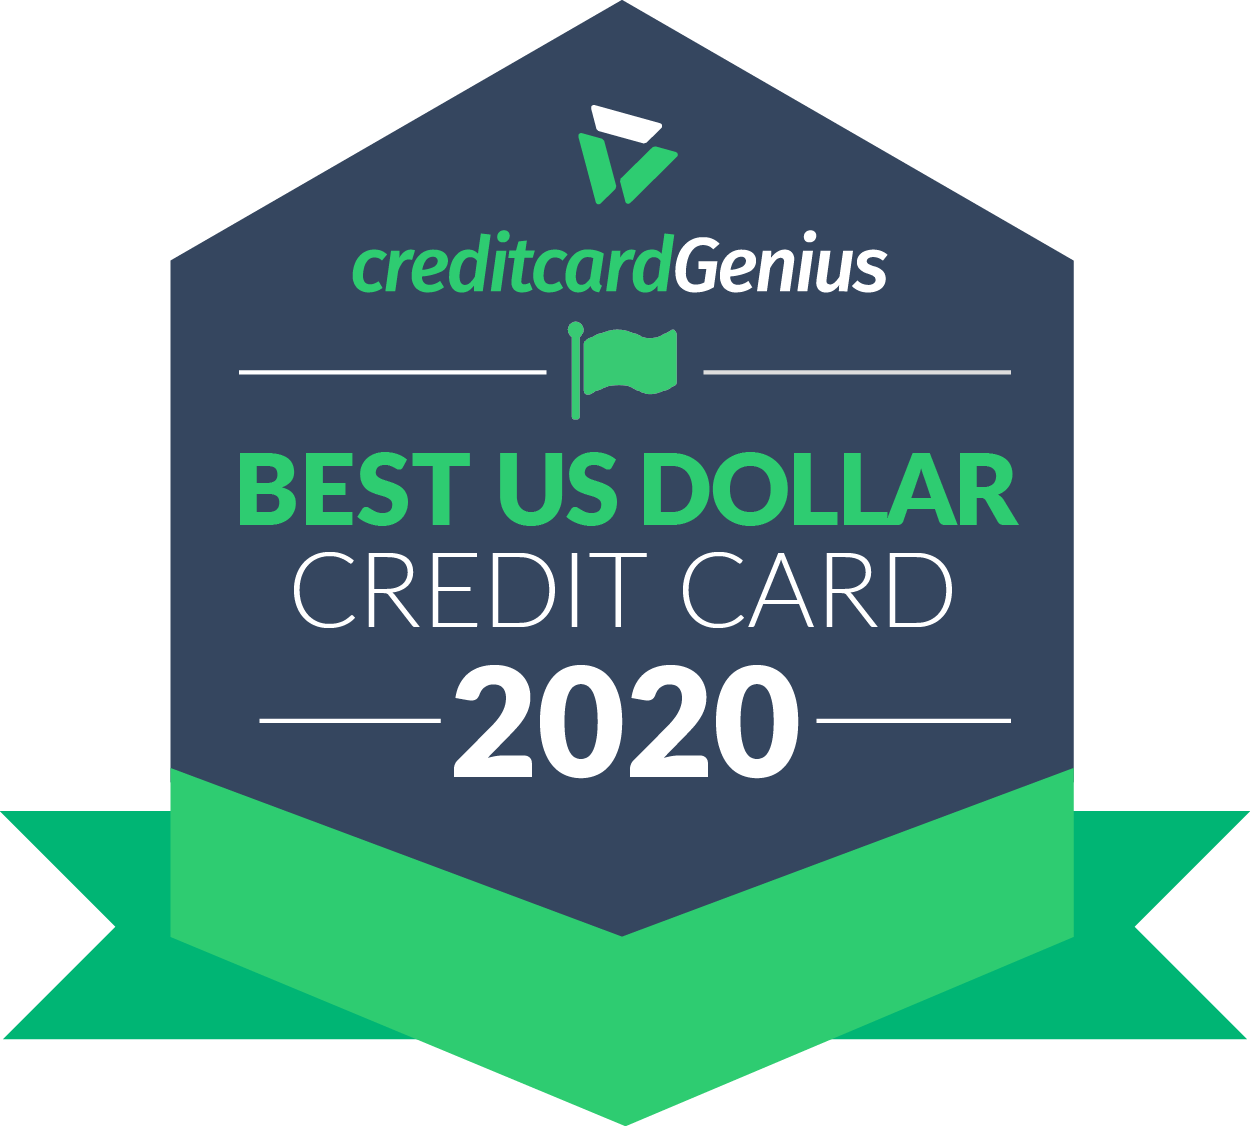 Best U.S. Dollar credit card in Canada for 2020 award seal